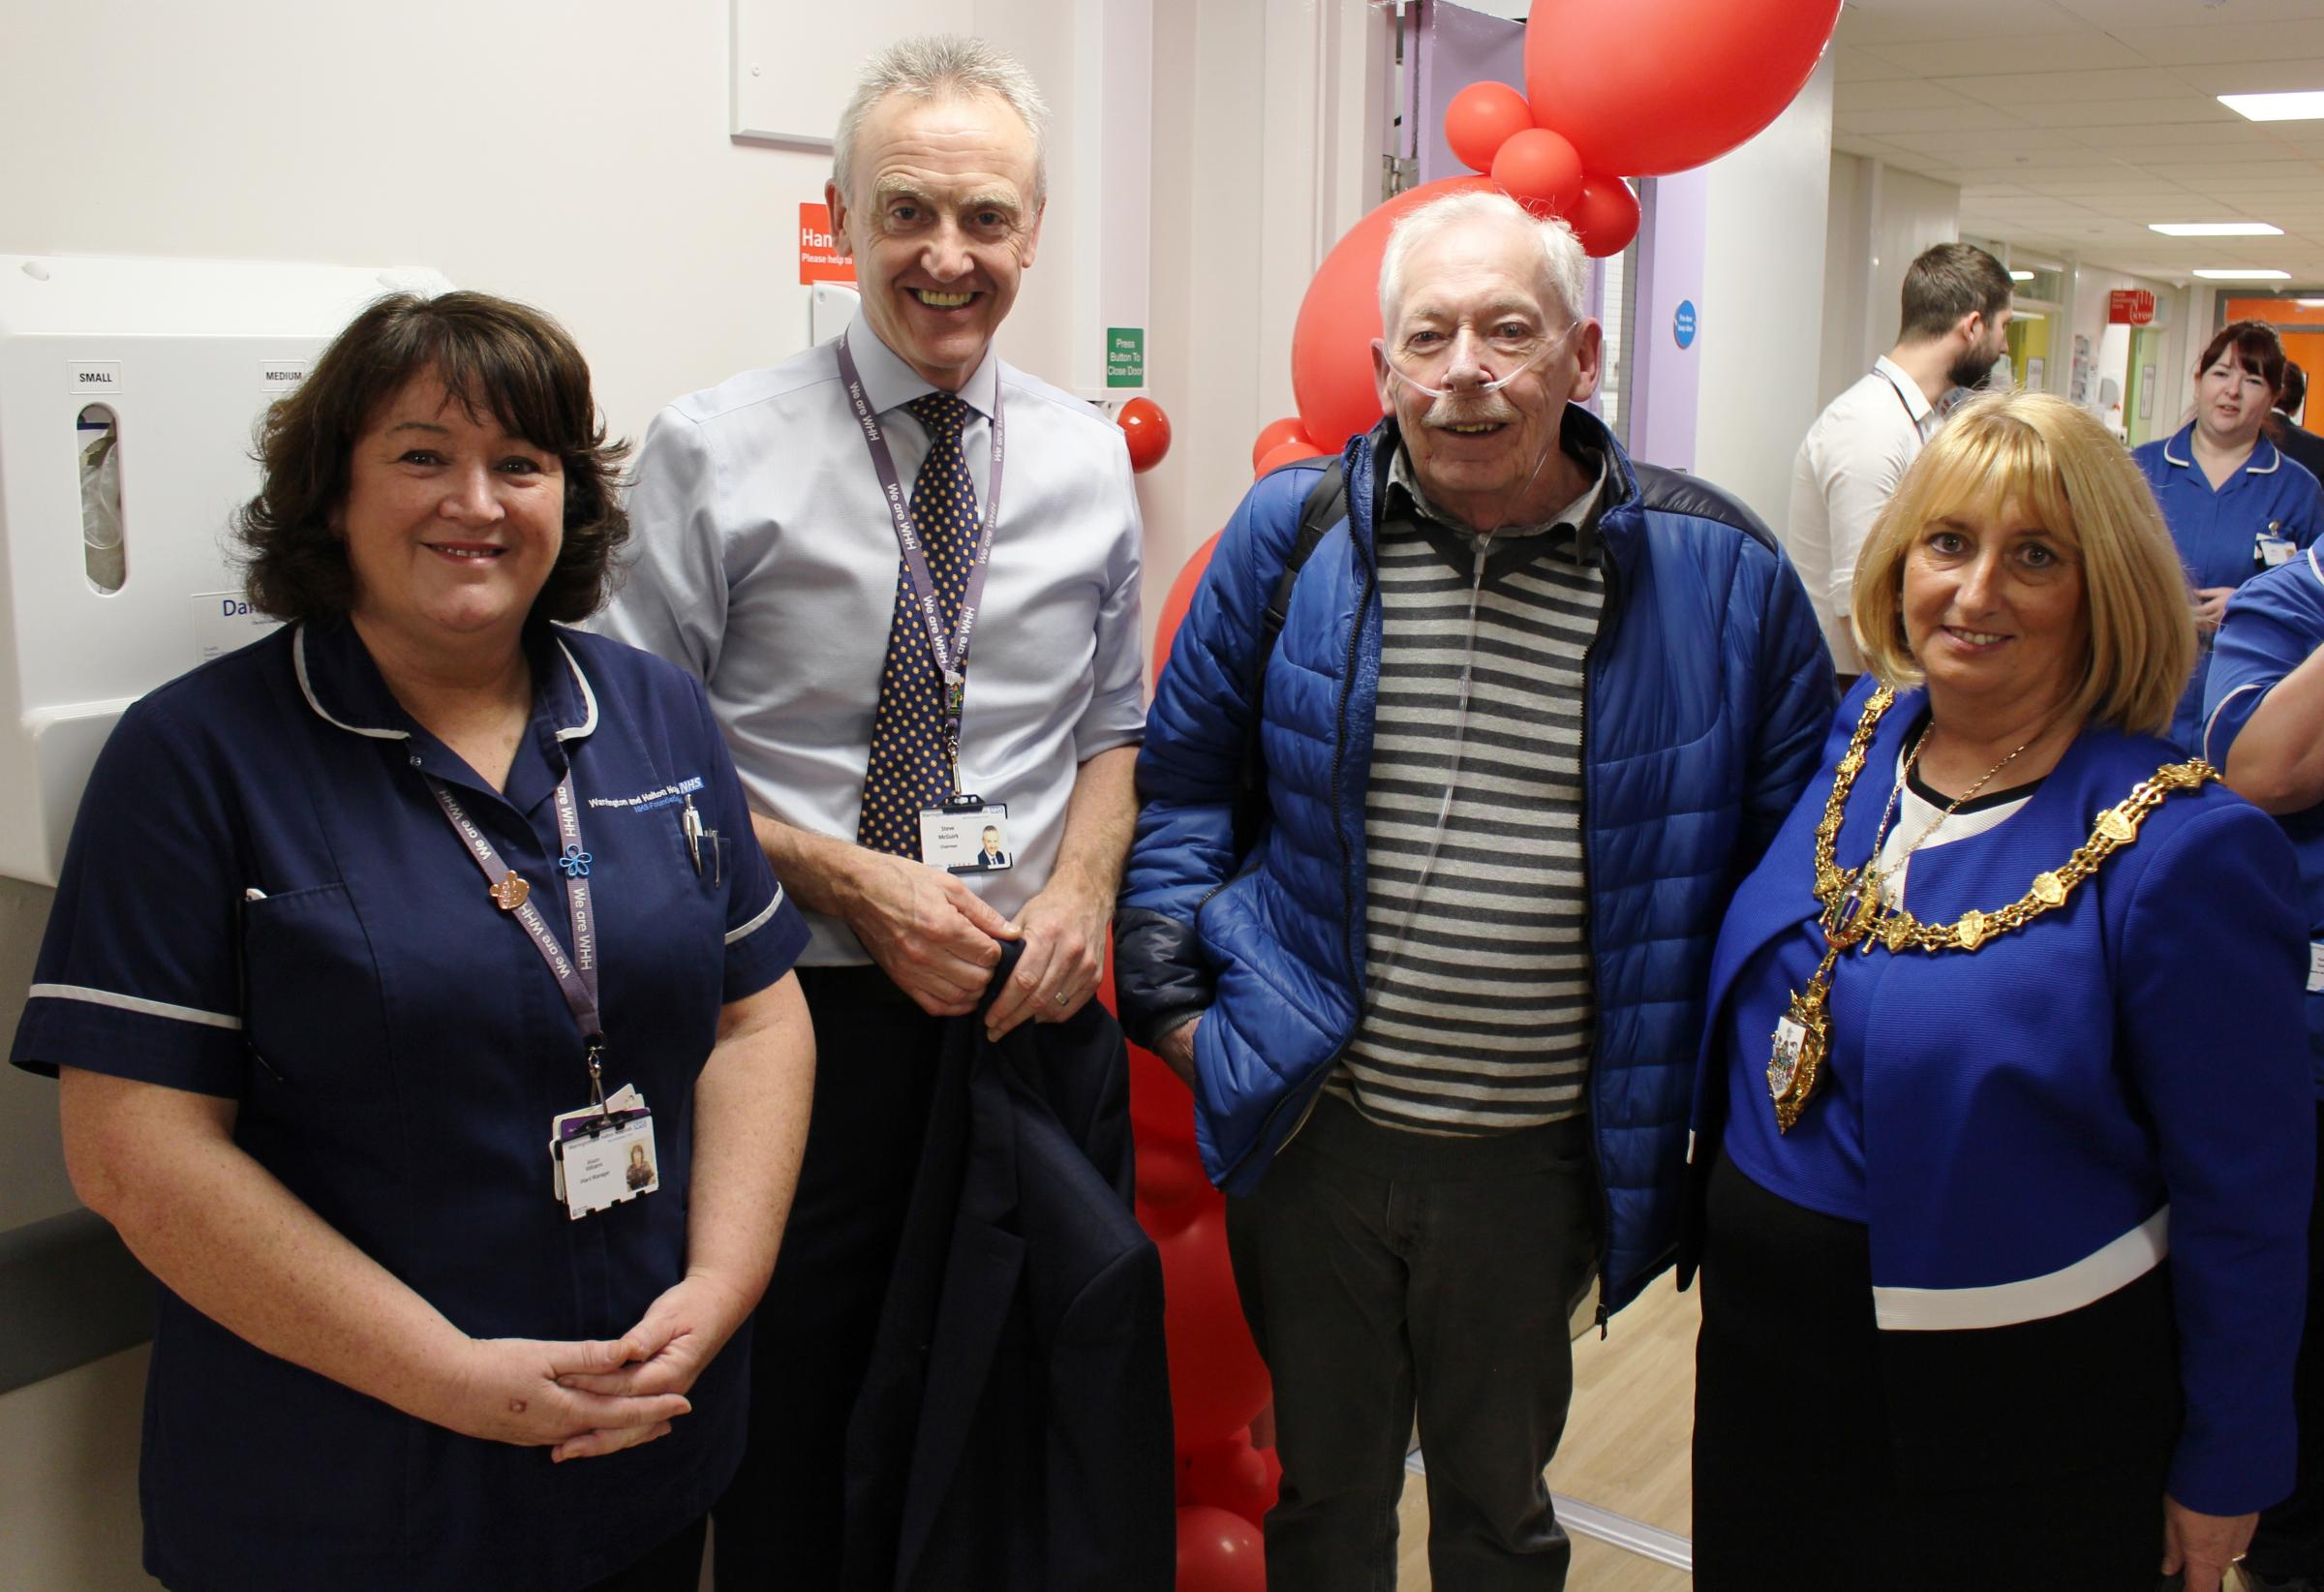 From left; ward manager Alison Williams, trust chairman Steve McGuirk, patient Ian Williams and the Mayor of Warrington Cllr Karen Mundry at the opening of Warrington Hospital's new acute cardiac care unit.